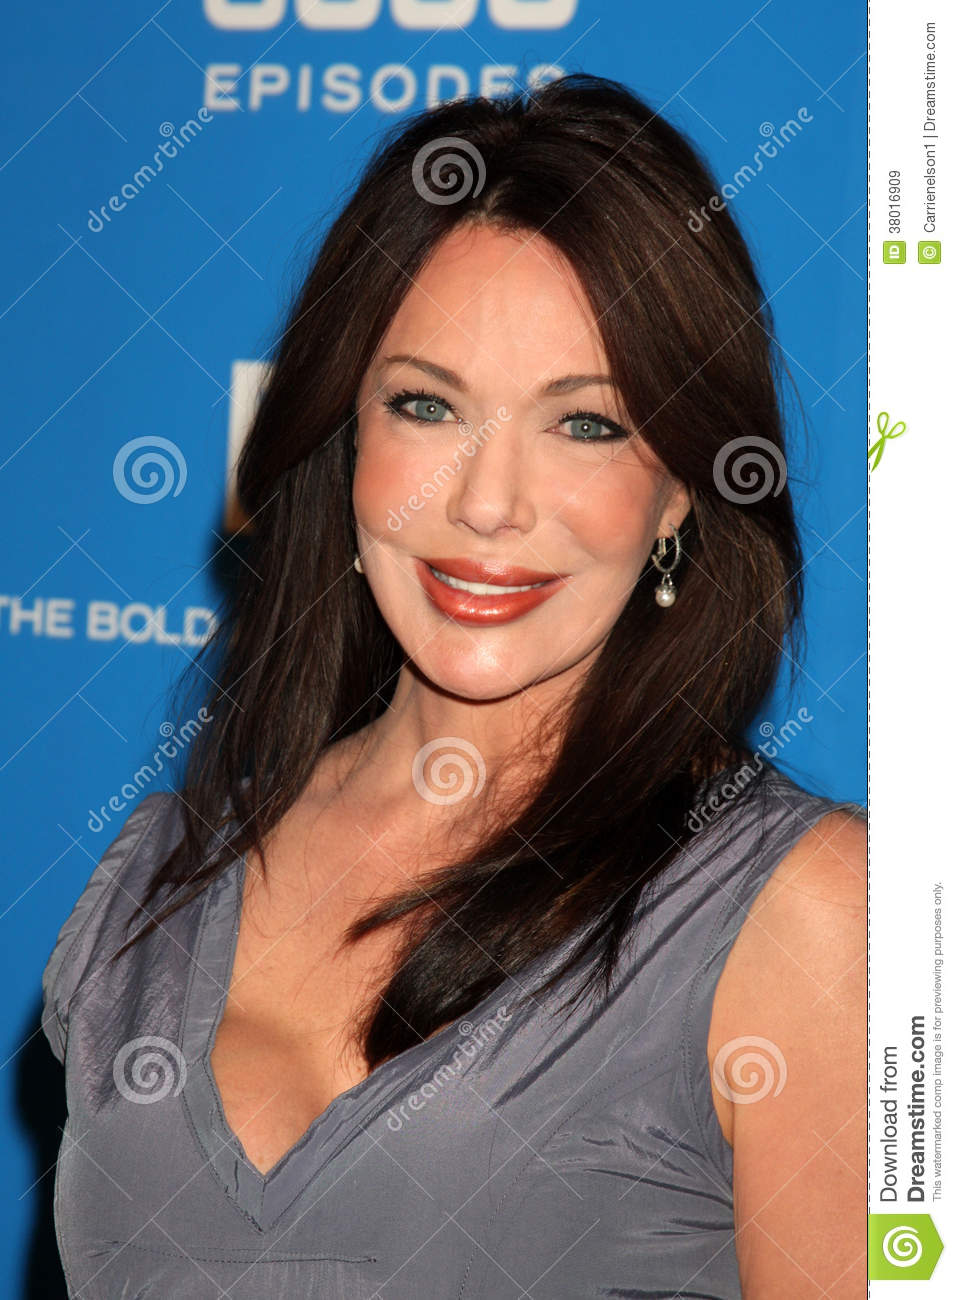 hunter tylo younghunter tylo 2016, hunter tylo instagram, hunter tylo young, hunter tylo, hunter tylo 2015, hunter tylo facebook, hunter tylo imdb, hunter tylo photos, hunter tylo net worth, hunter tylo son, hunter tylo son's death, hunter tylo 2014, hunter tylo twitter, hunter tylo figlio morto, hunter tylo before and after, hunter tylo plastische chirurgie, hunter tylo hot, hunter tylo daughter, hunter tylo figli, hunter tylo surgery